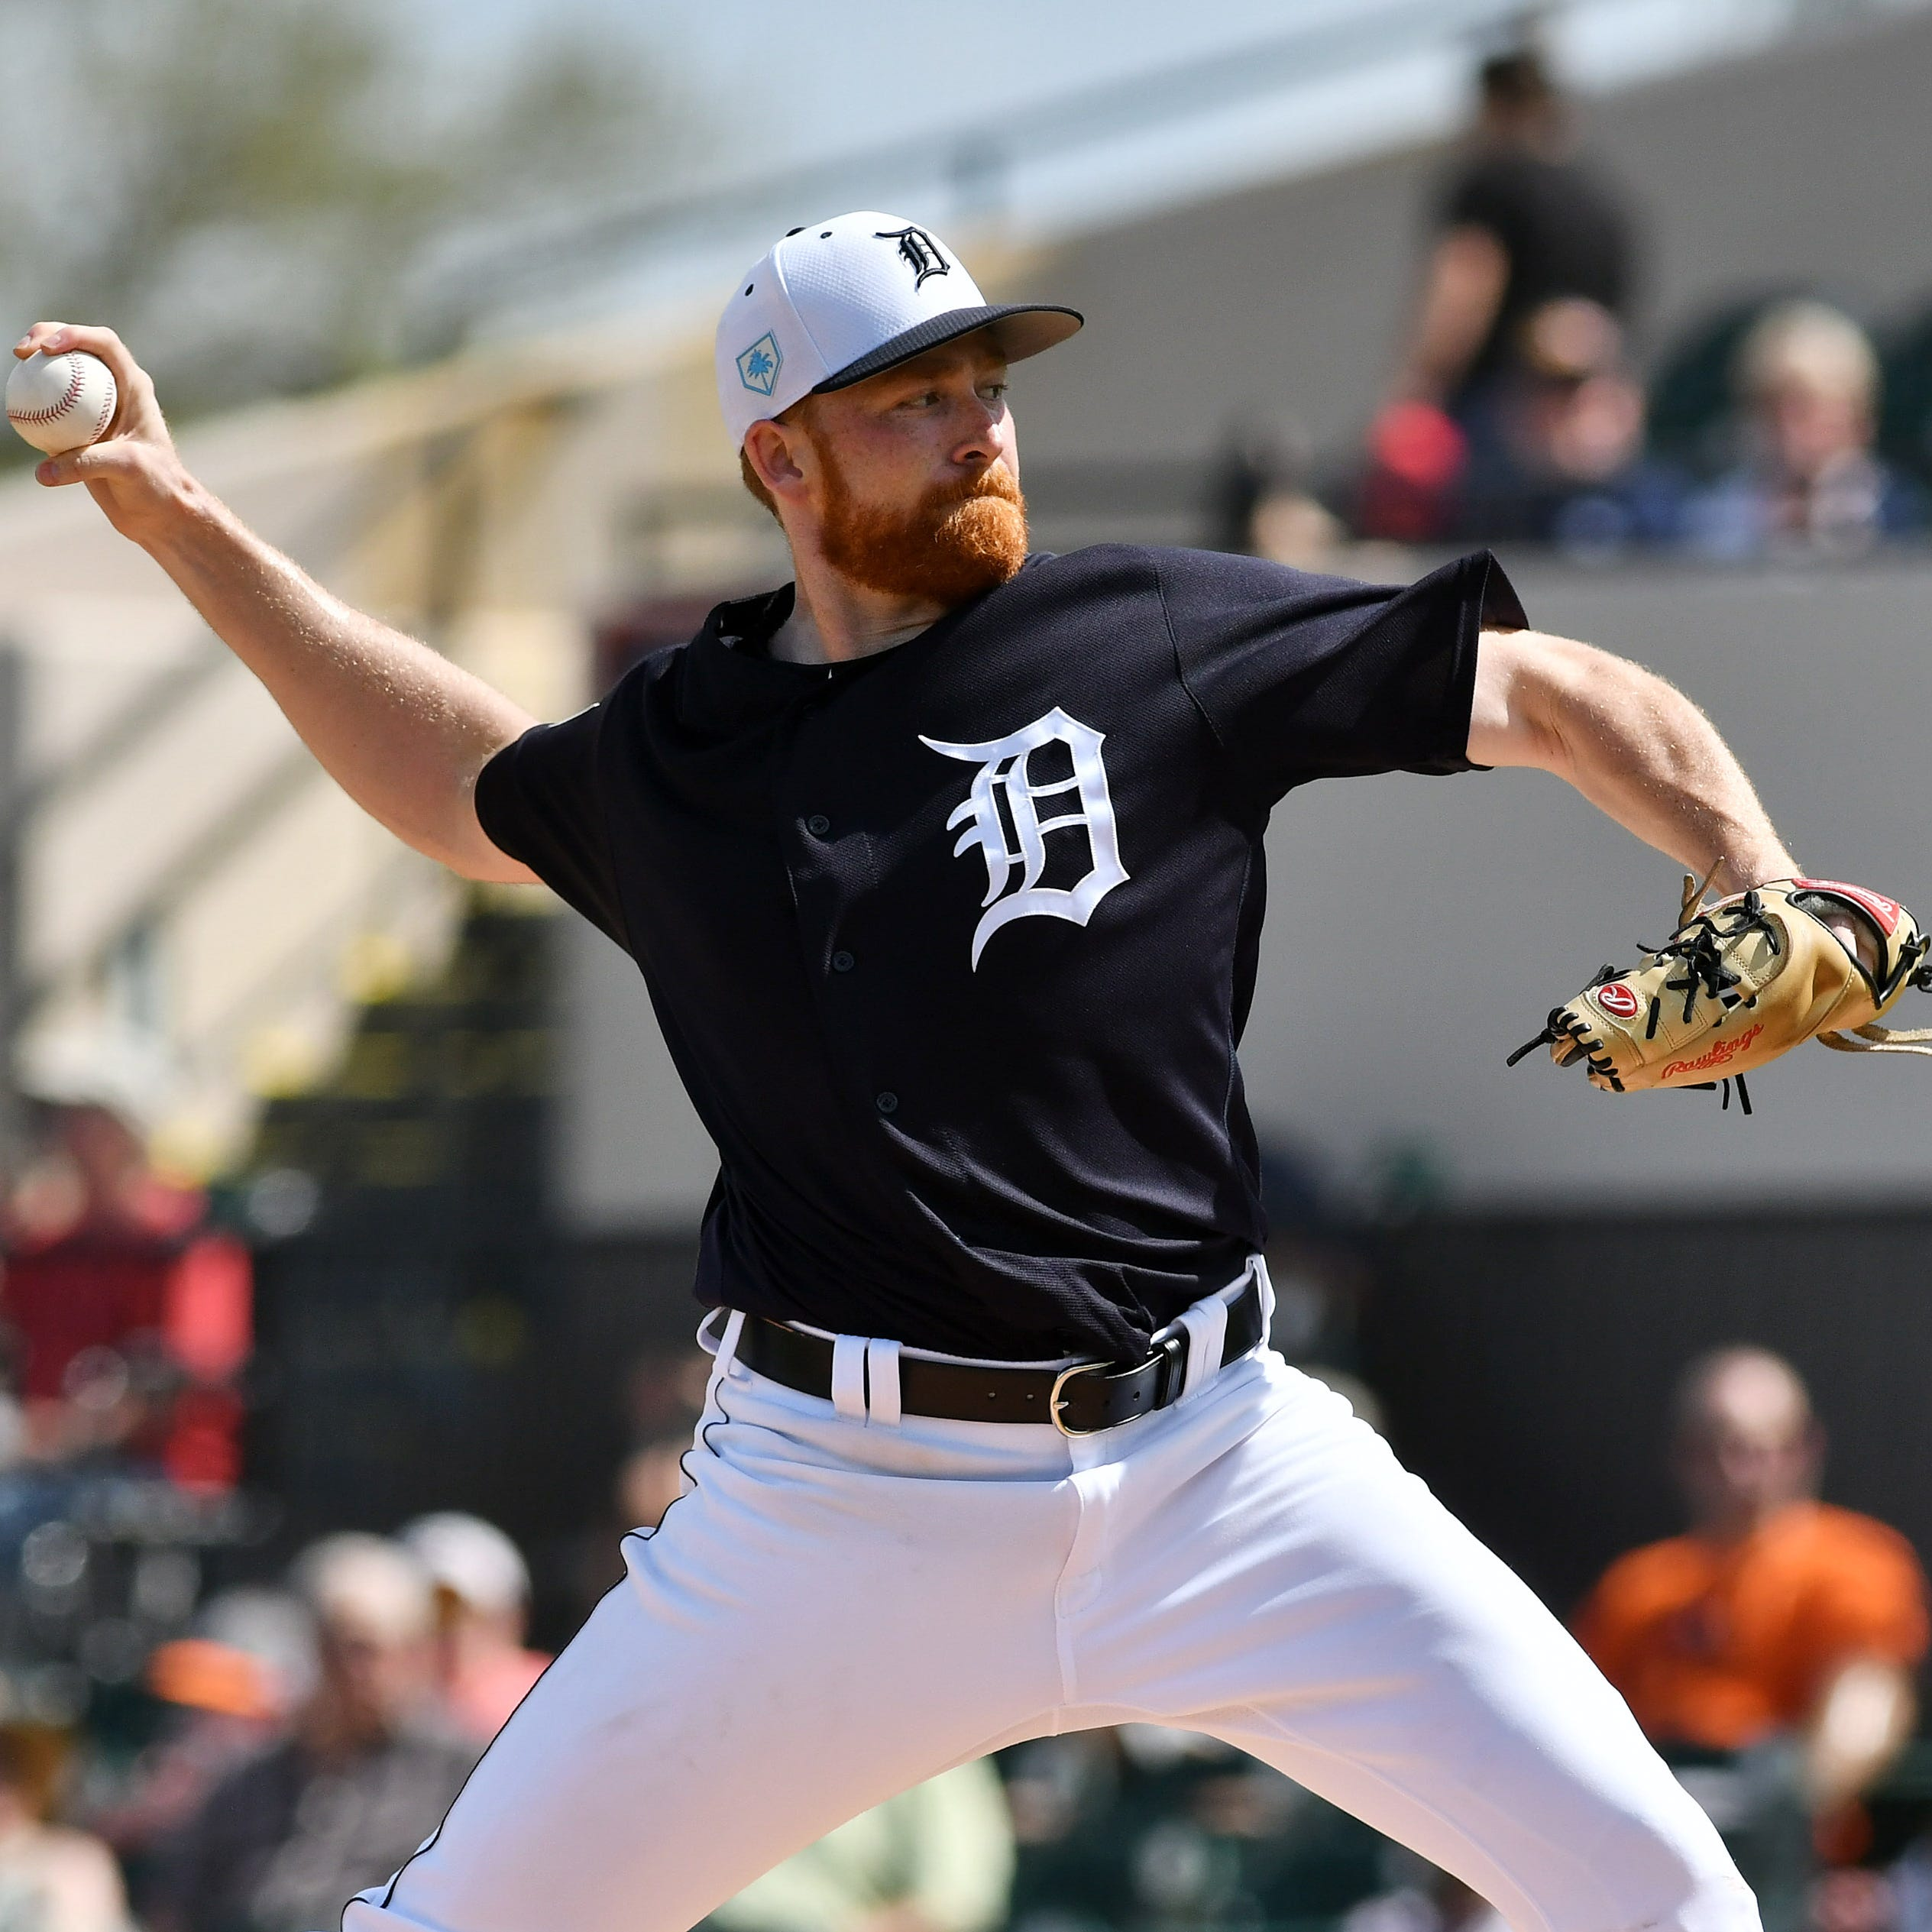 Spencer Turnbull looks to seize opportunity to open season with Tigers